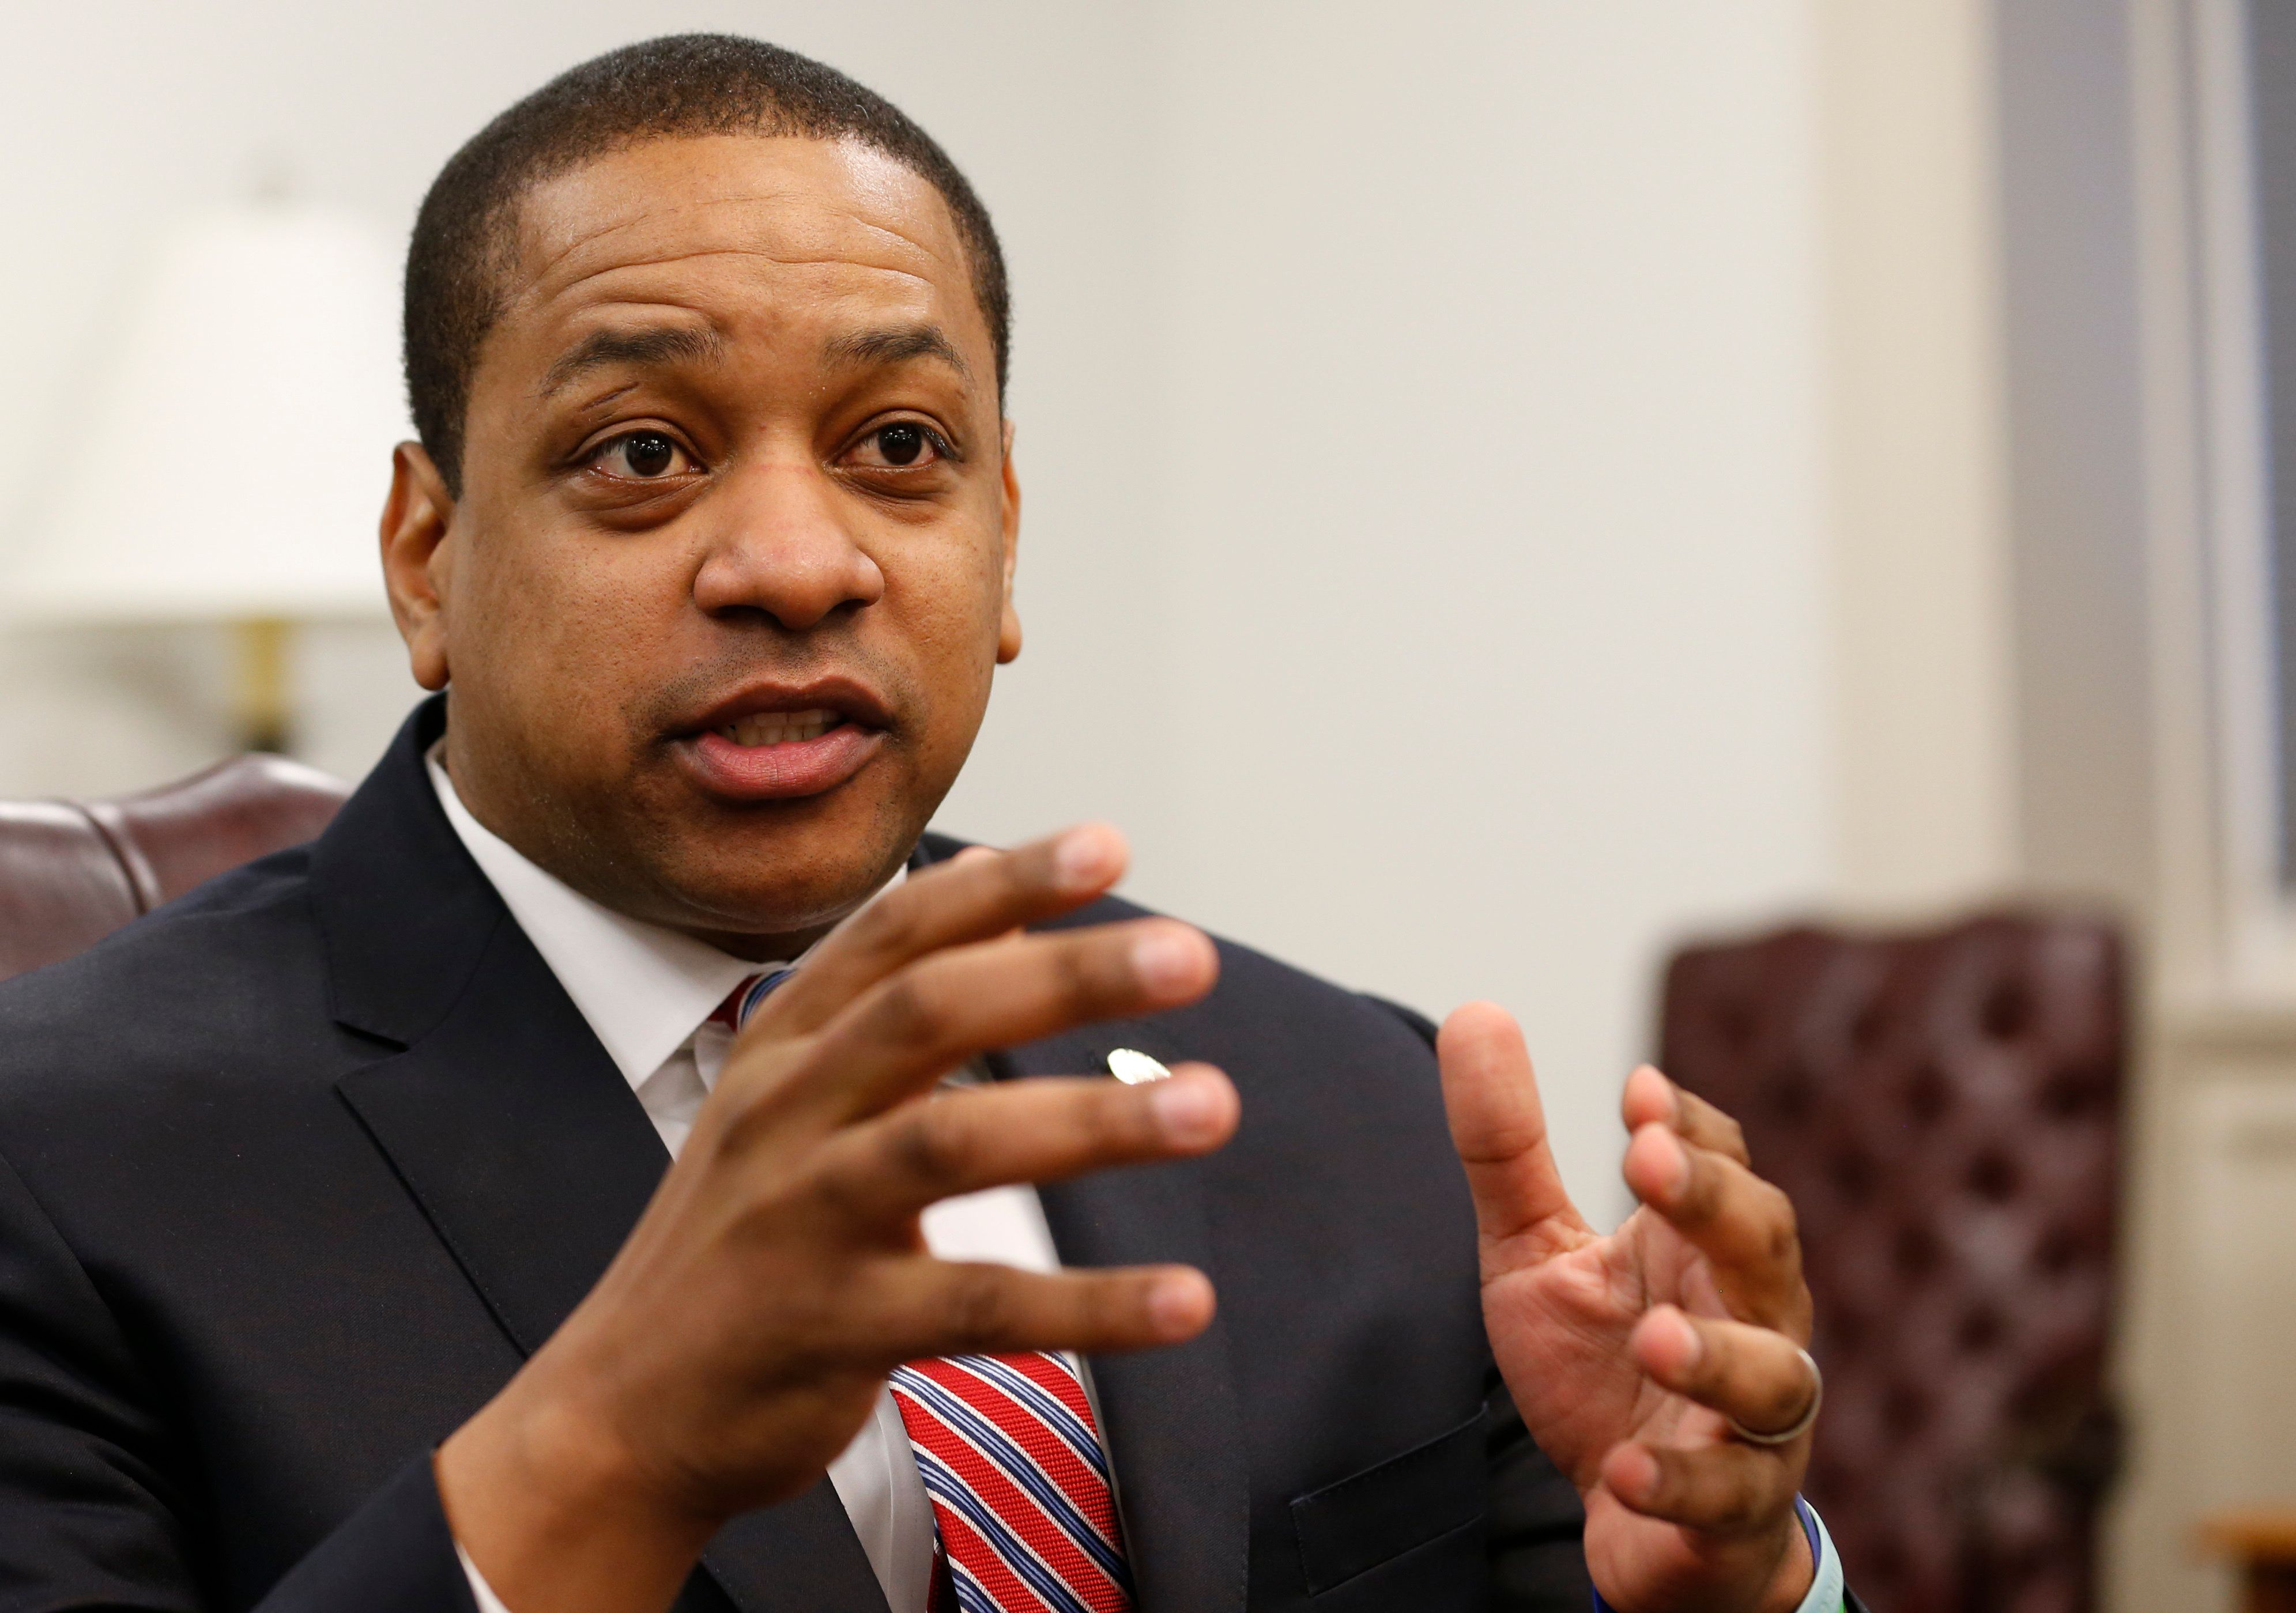 Virginia Lt. Gov. Justin Fairfax (D) is one of the only elected officials in Virginia who has not called on Gov. Ralph Northa